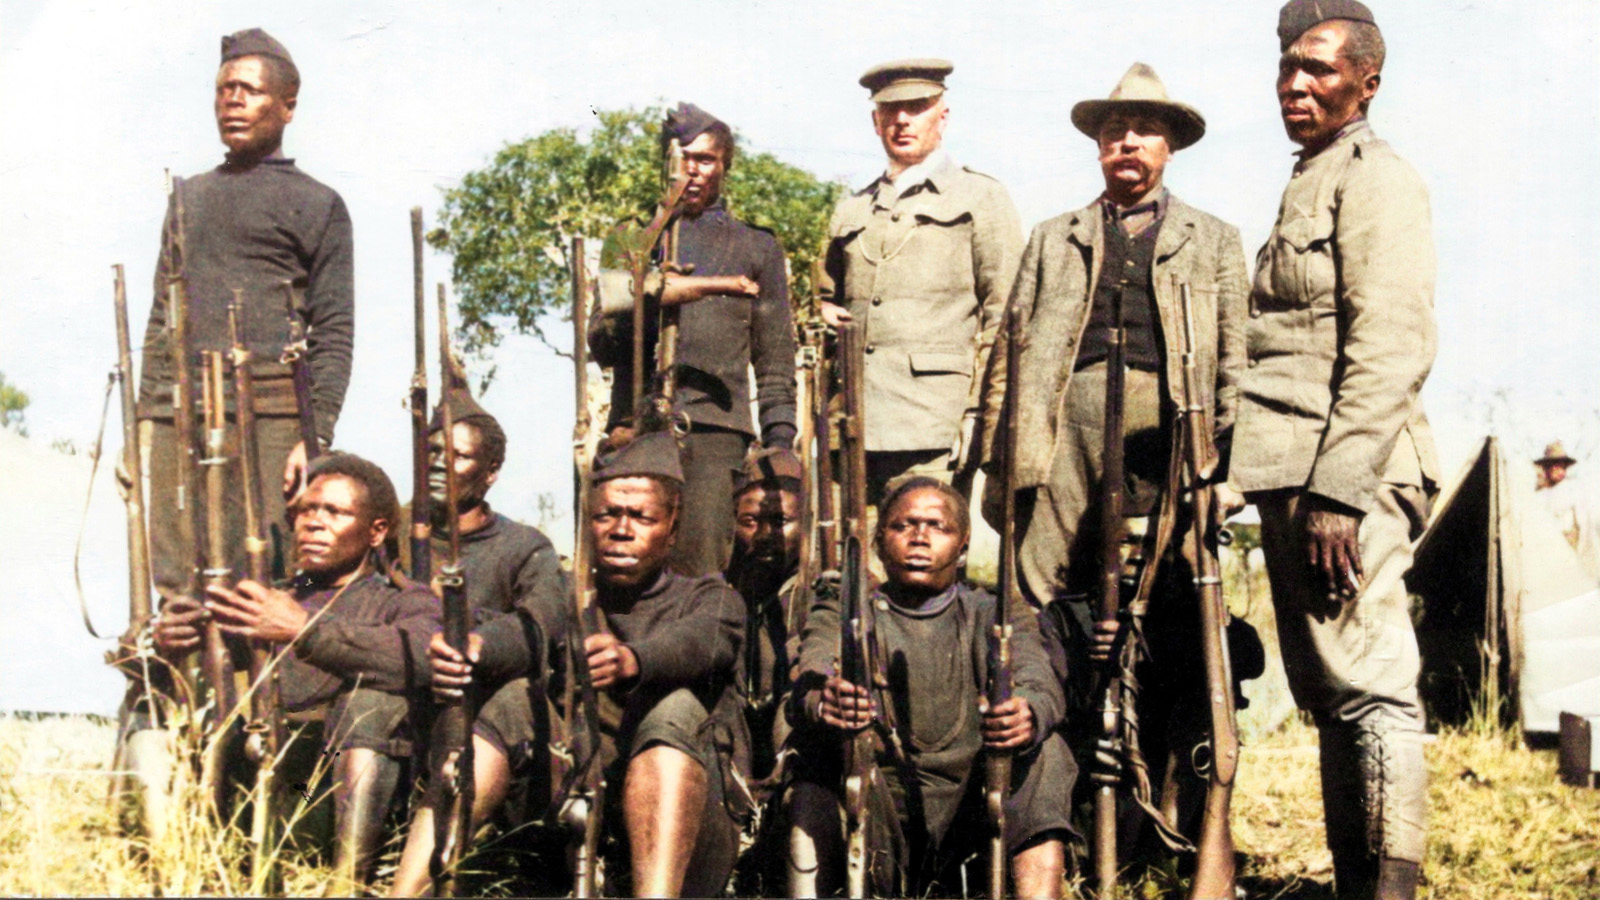 Men of the Zululand native police (Nongqayi) with rebel firearms captured at Mome. The man centre back is holding the butt of a musket smashed by a bullet